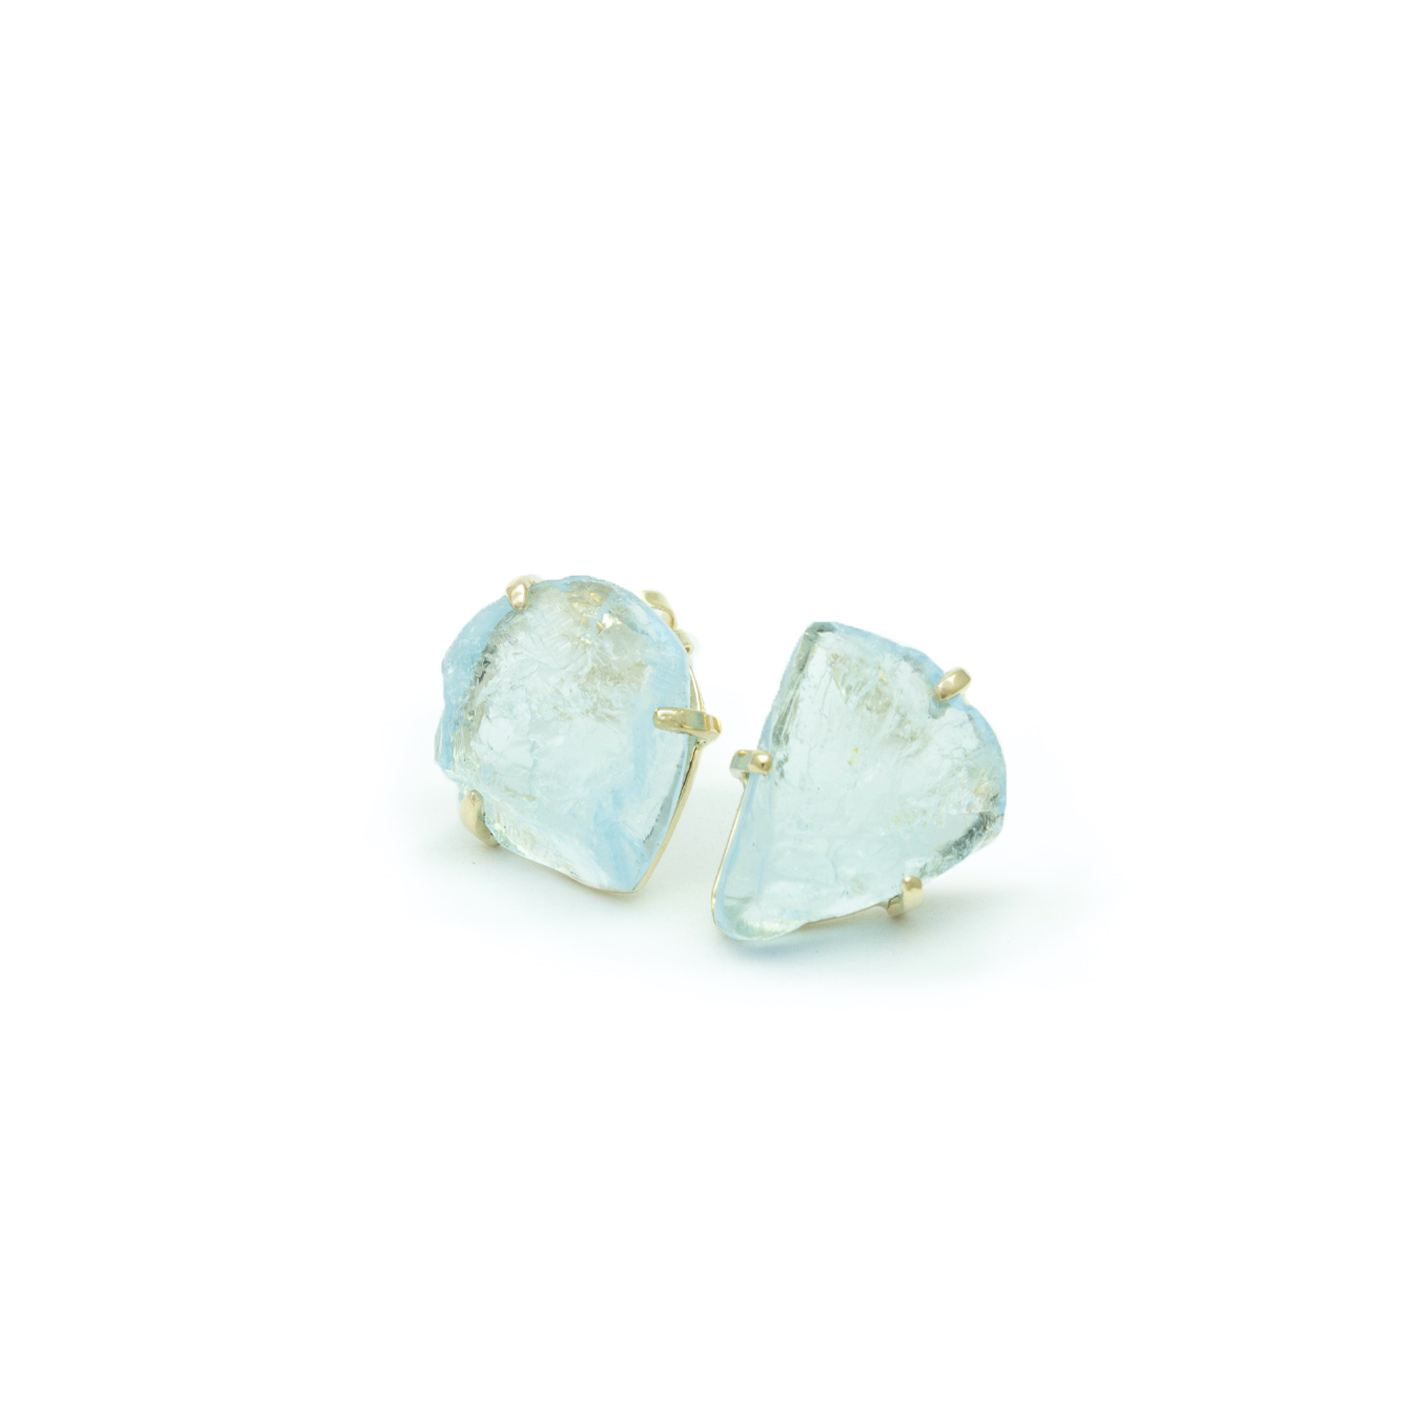 Gold studs with rough Swiss Topaz